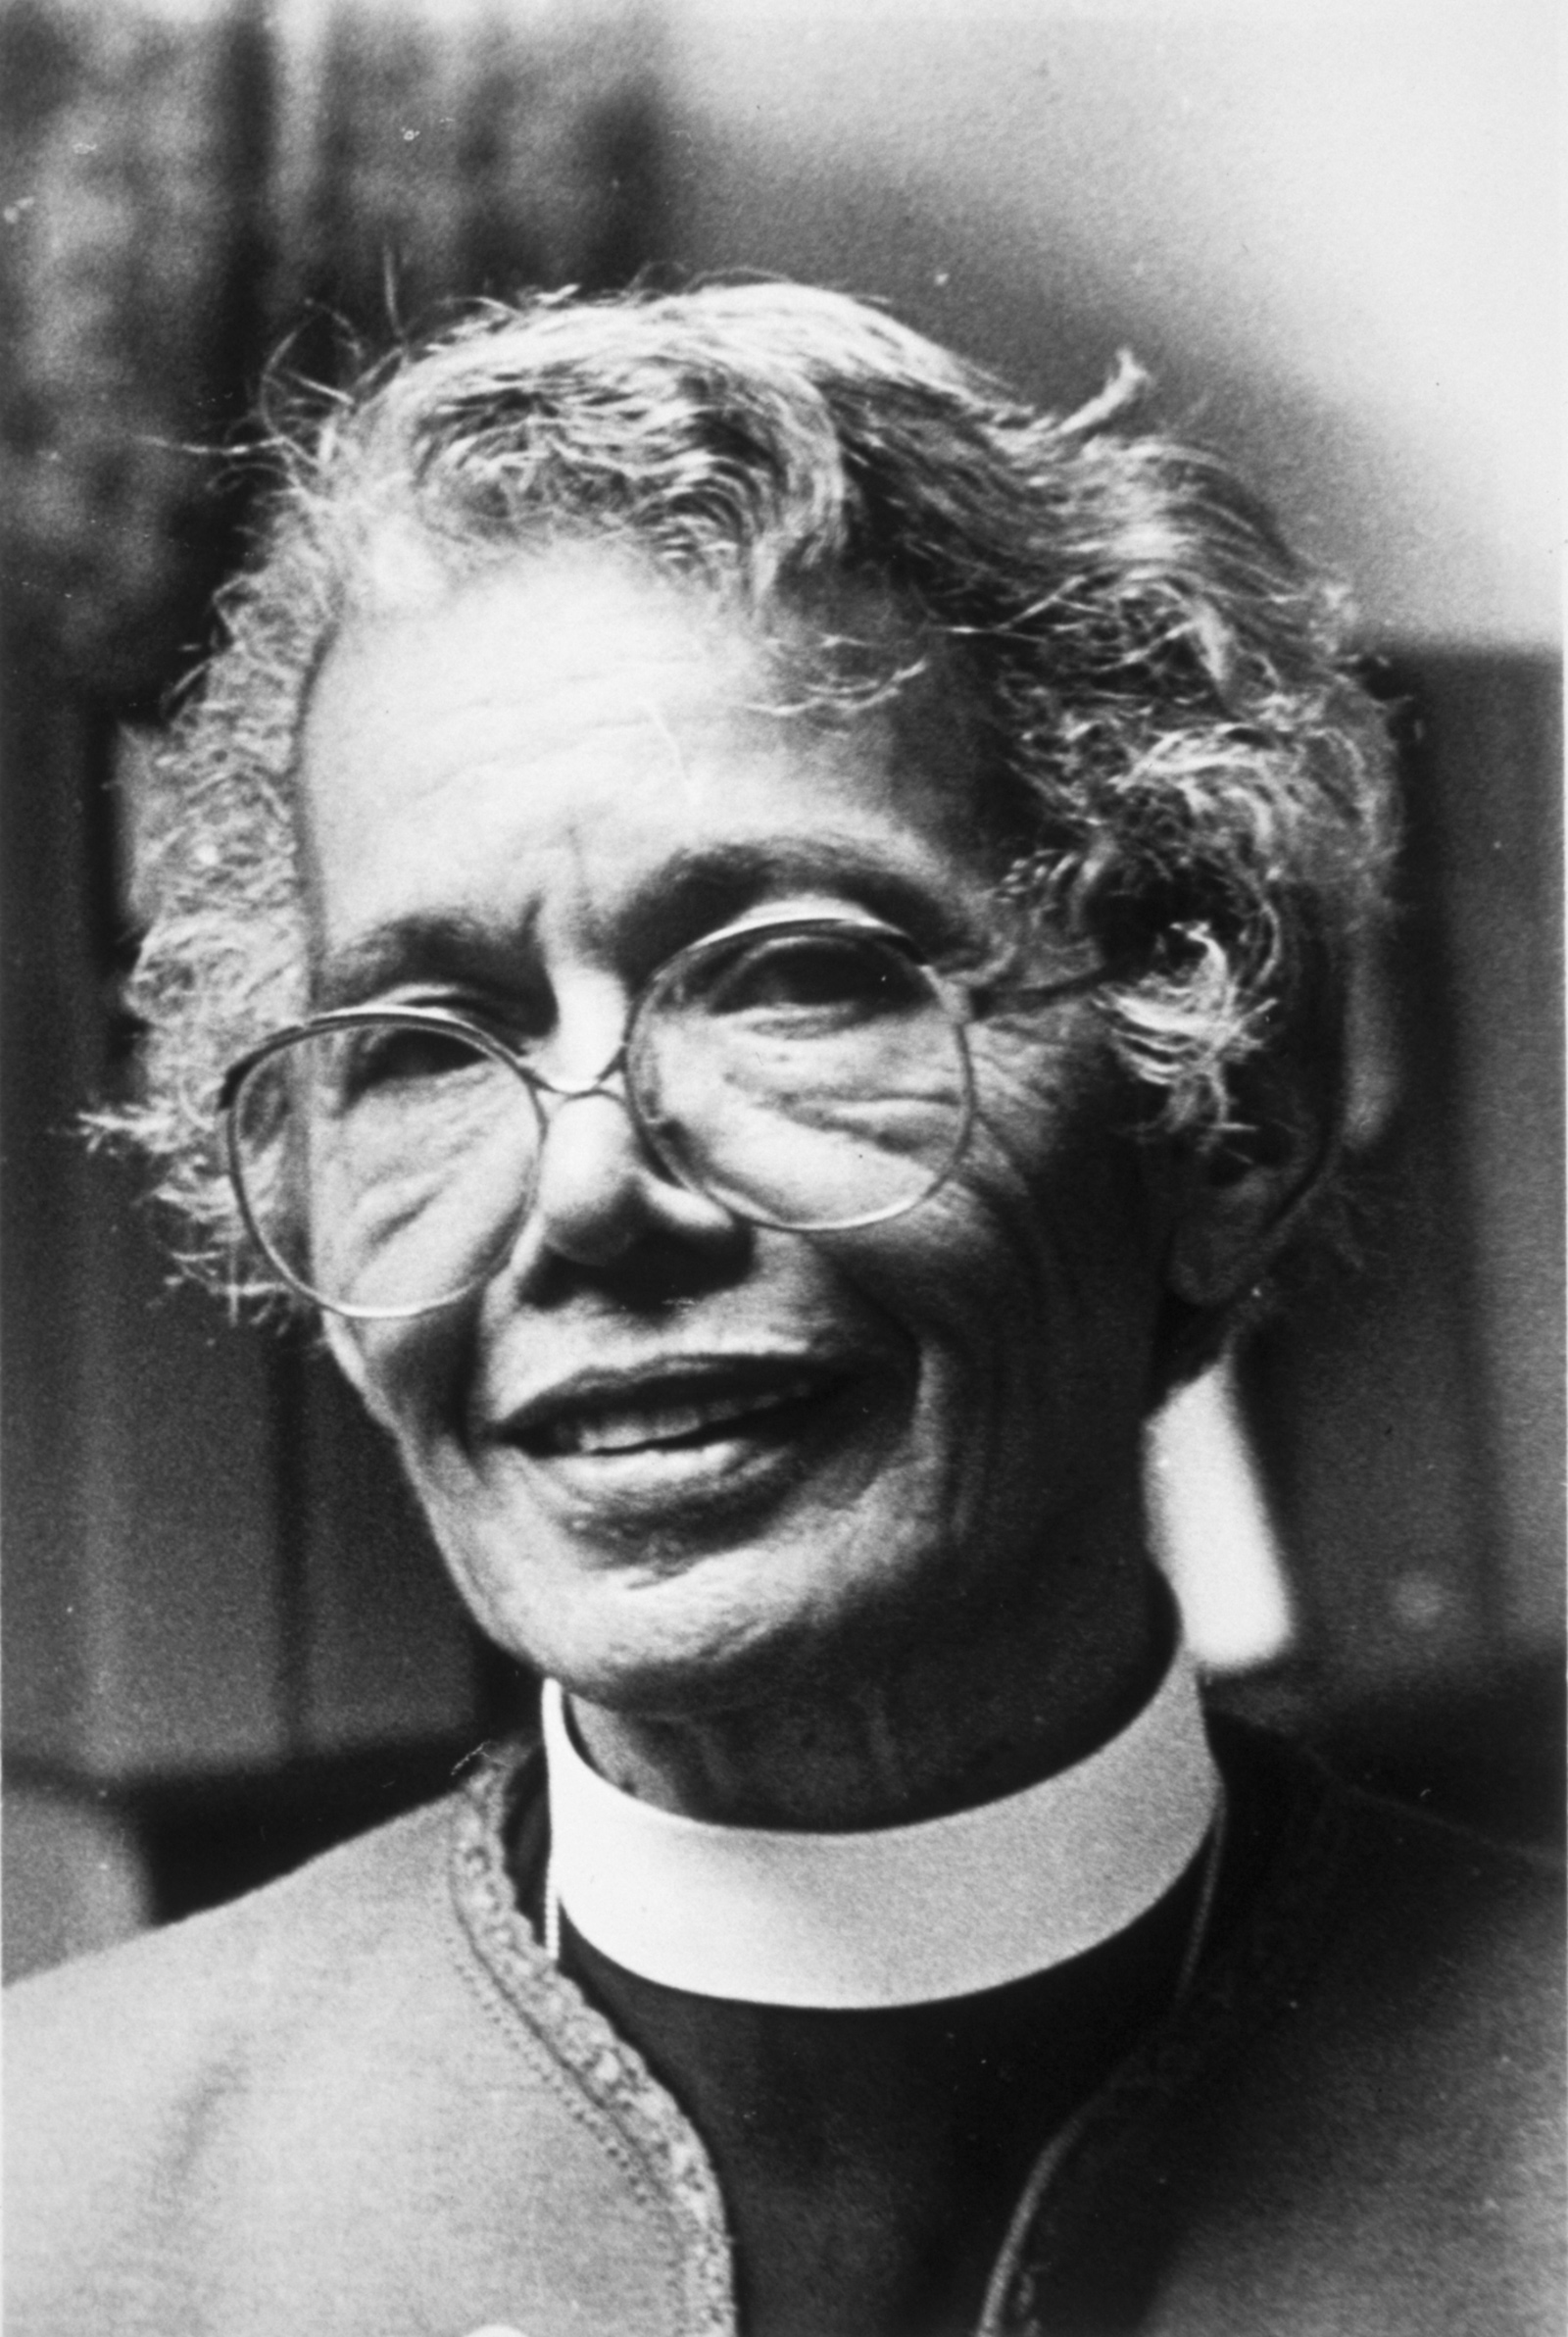 The civil rights activist Pauli Murray, circa 1977. Yale has announced that one of its new residential colleges will be named for her.